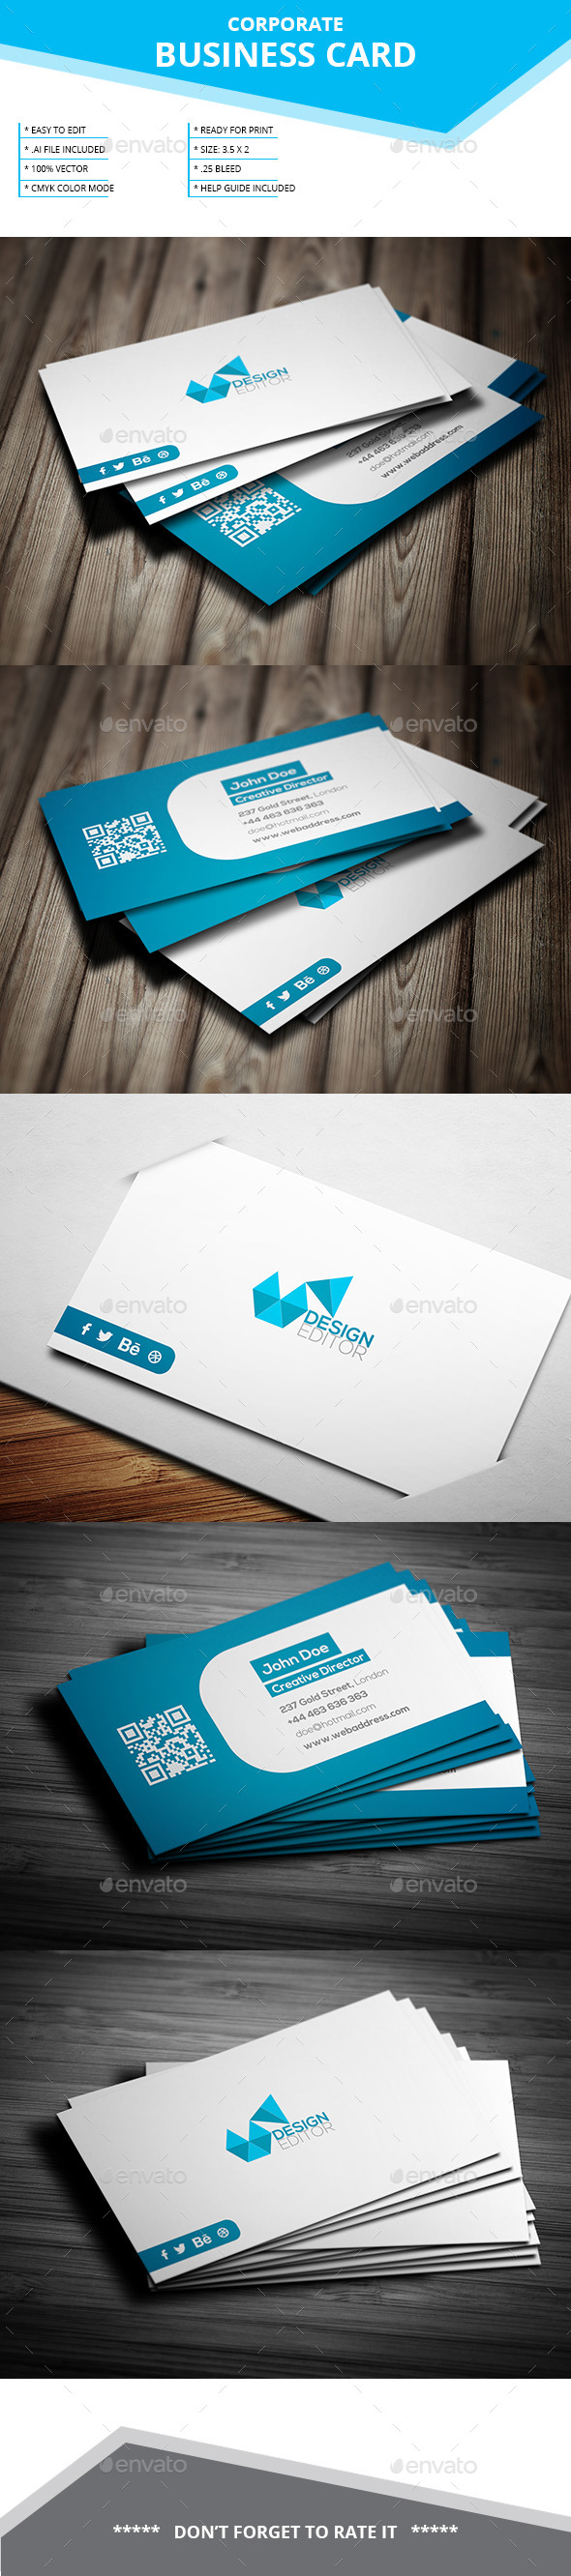 Corporate Business Card SL-19